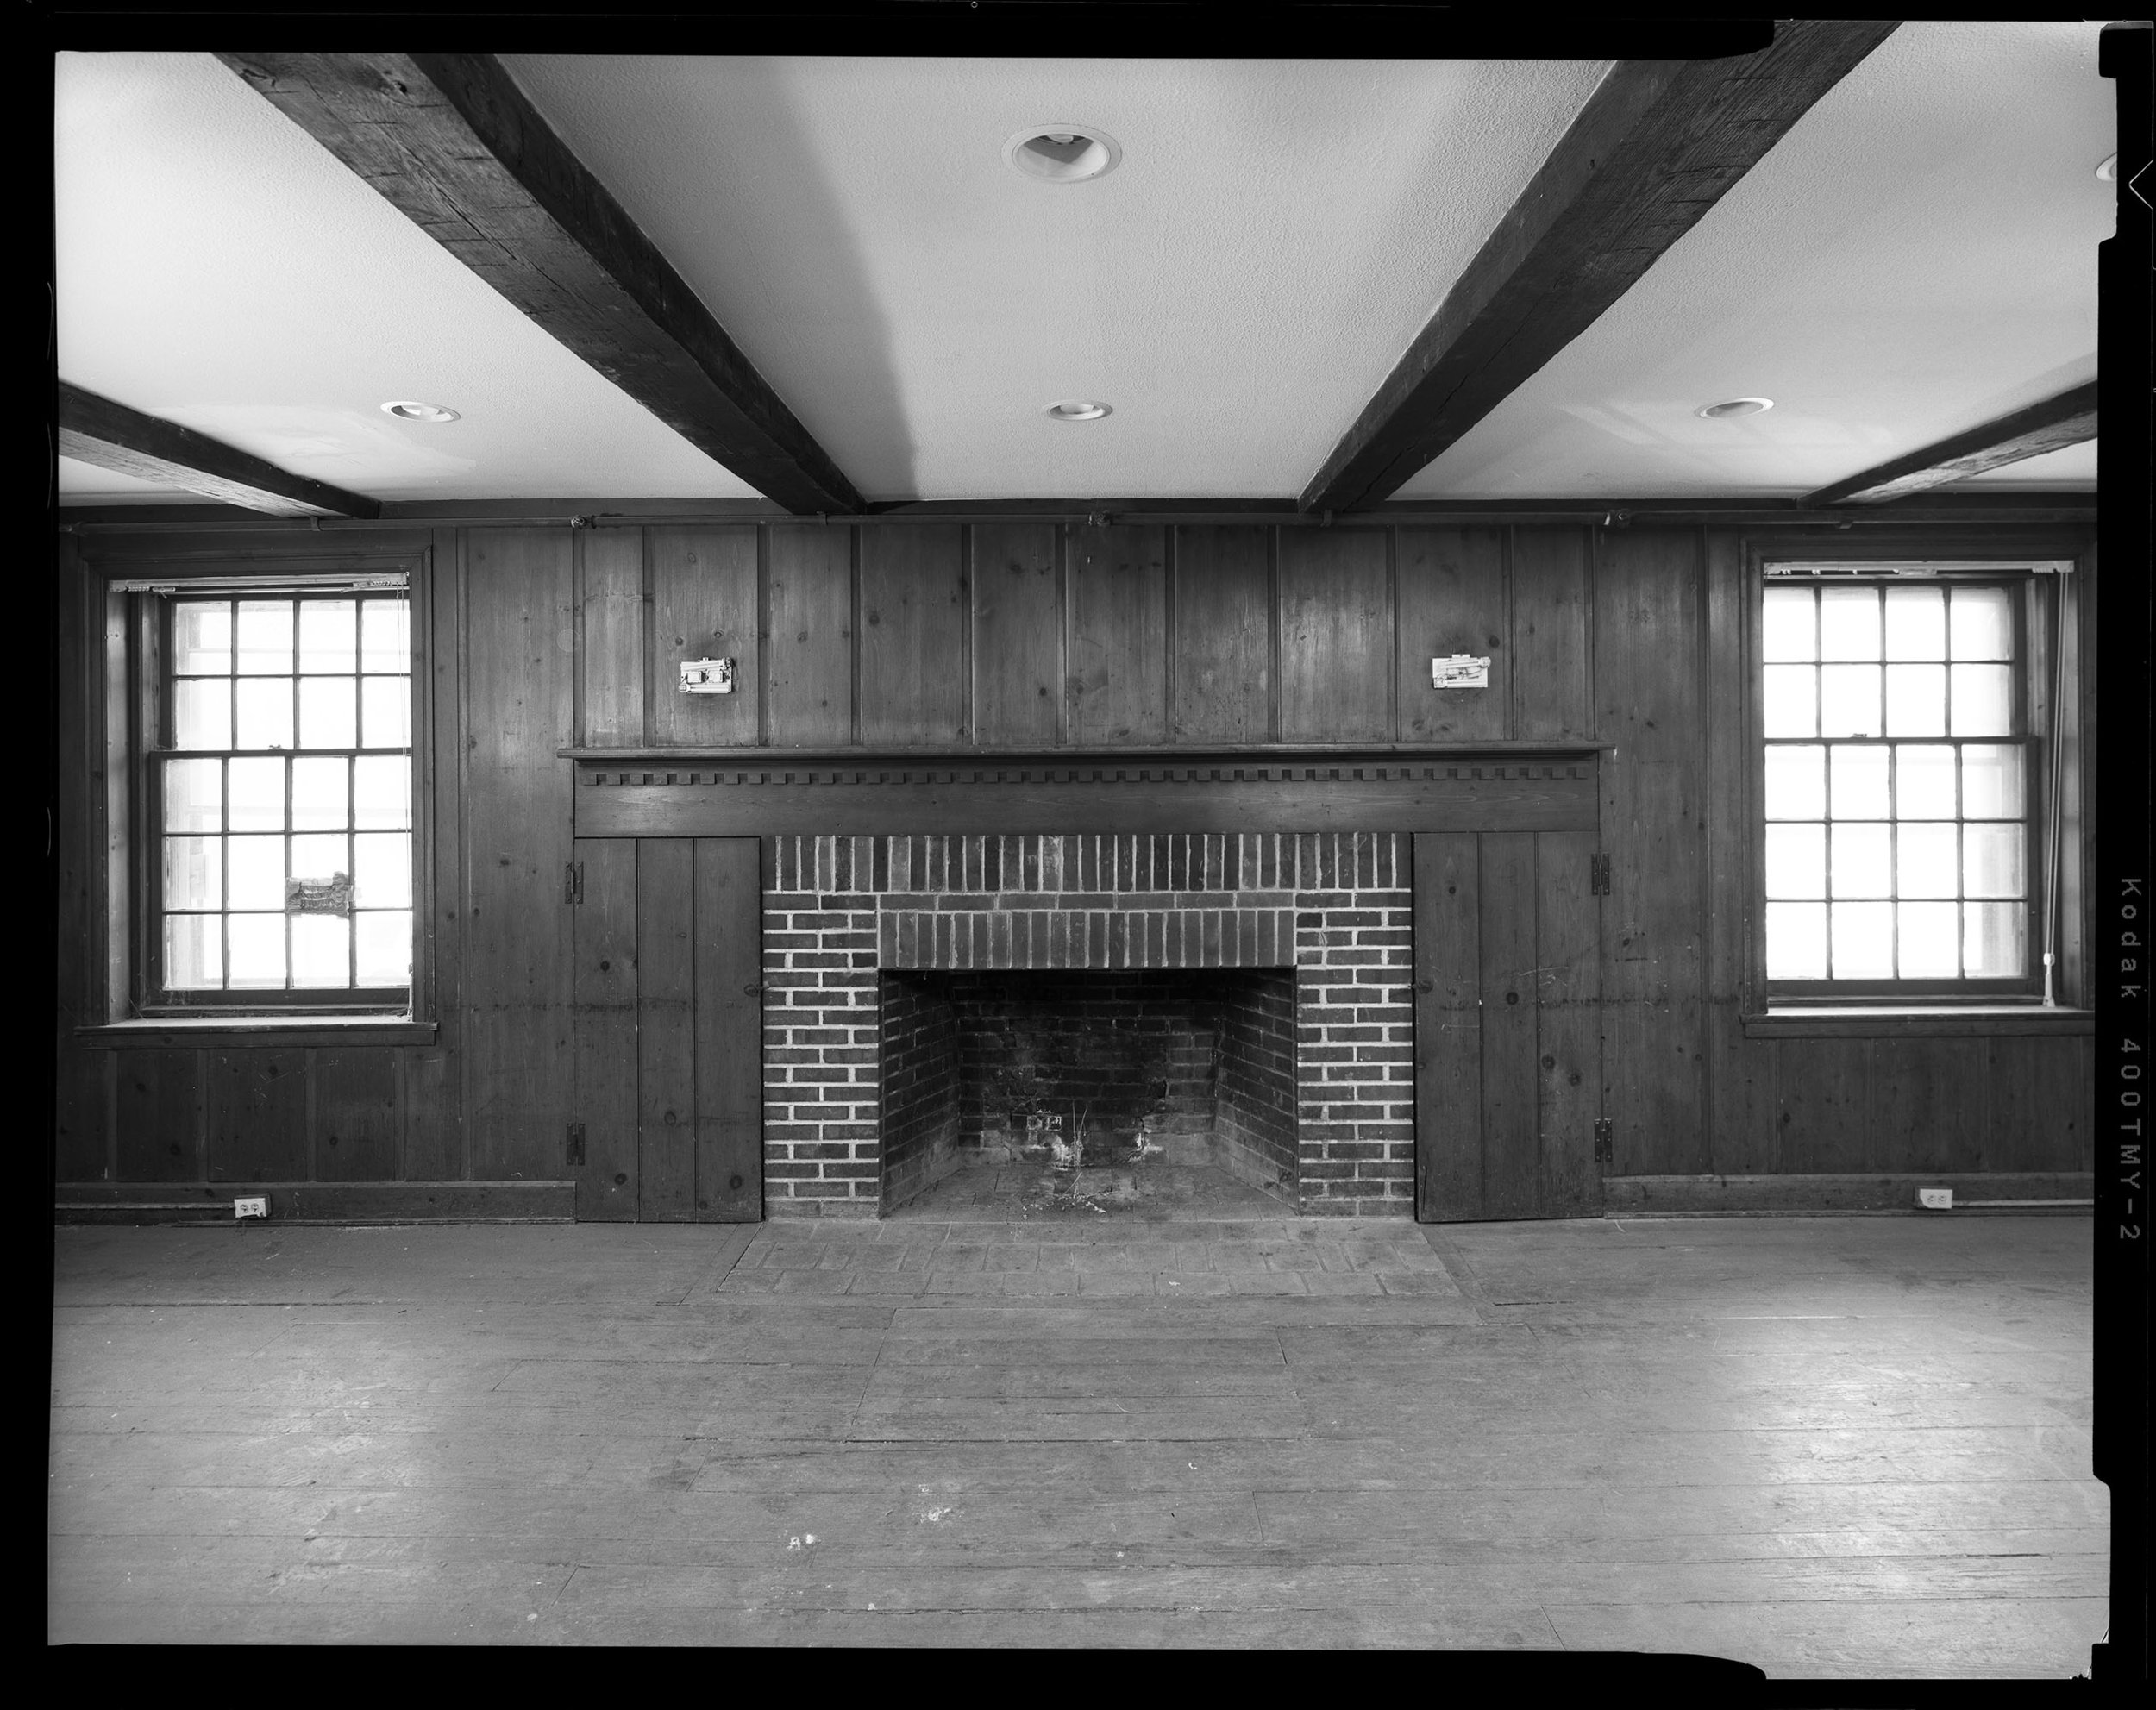 Recreation_Room_Showing_Mantelpiece_and_Windows.jpg